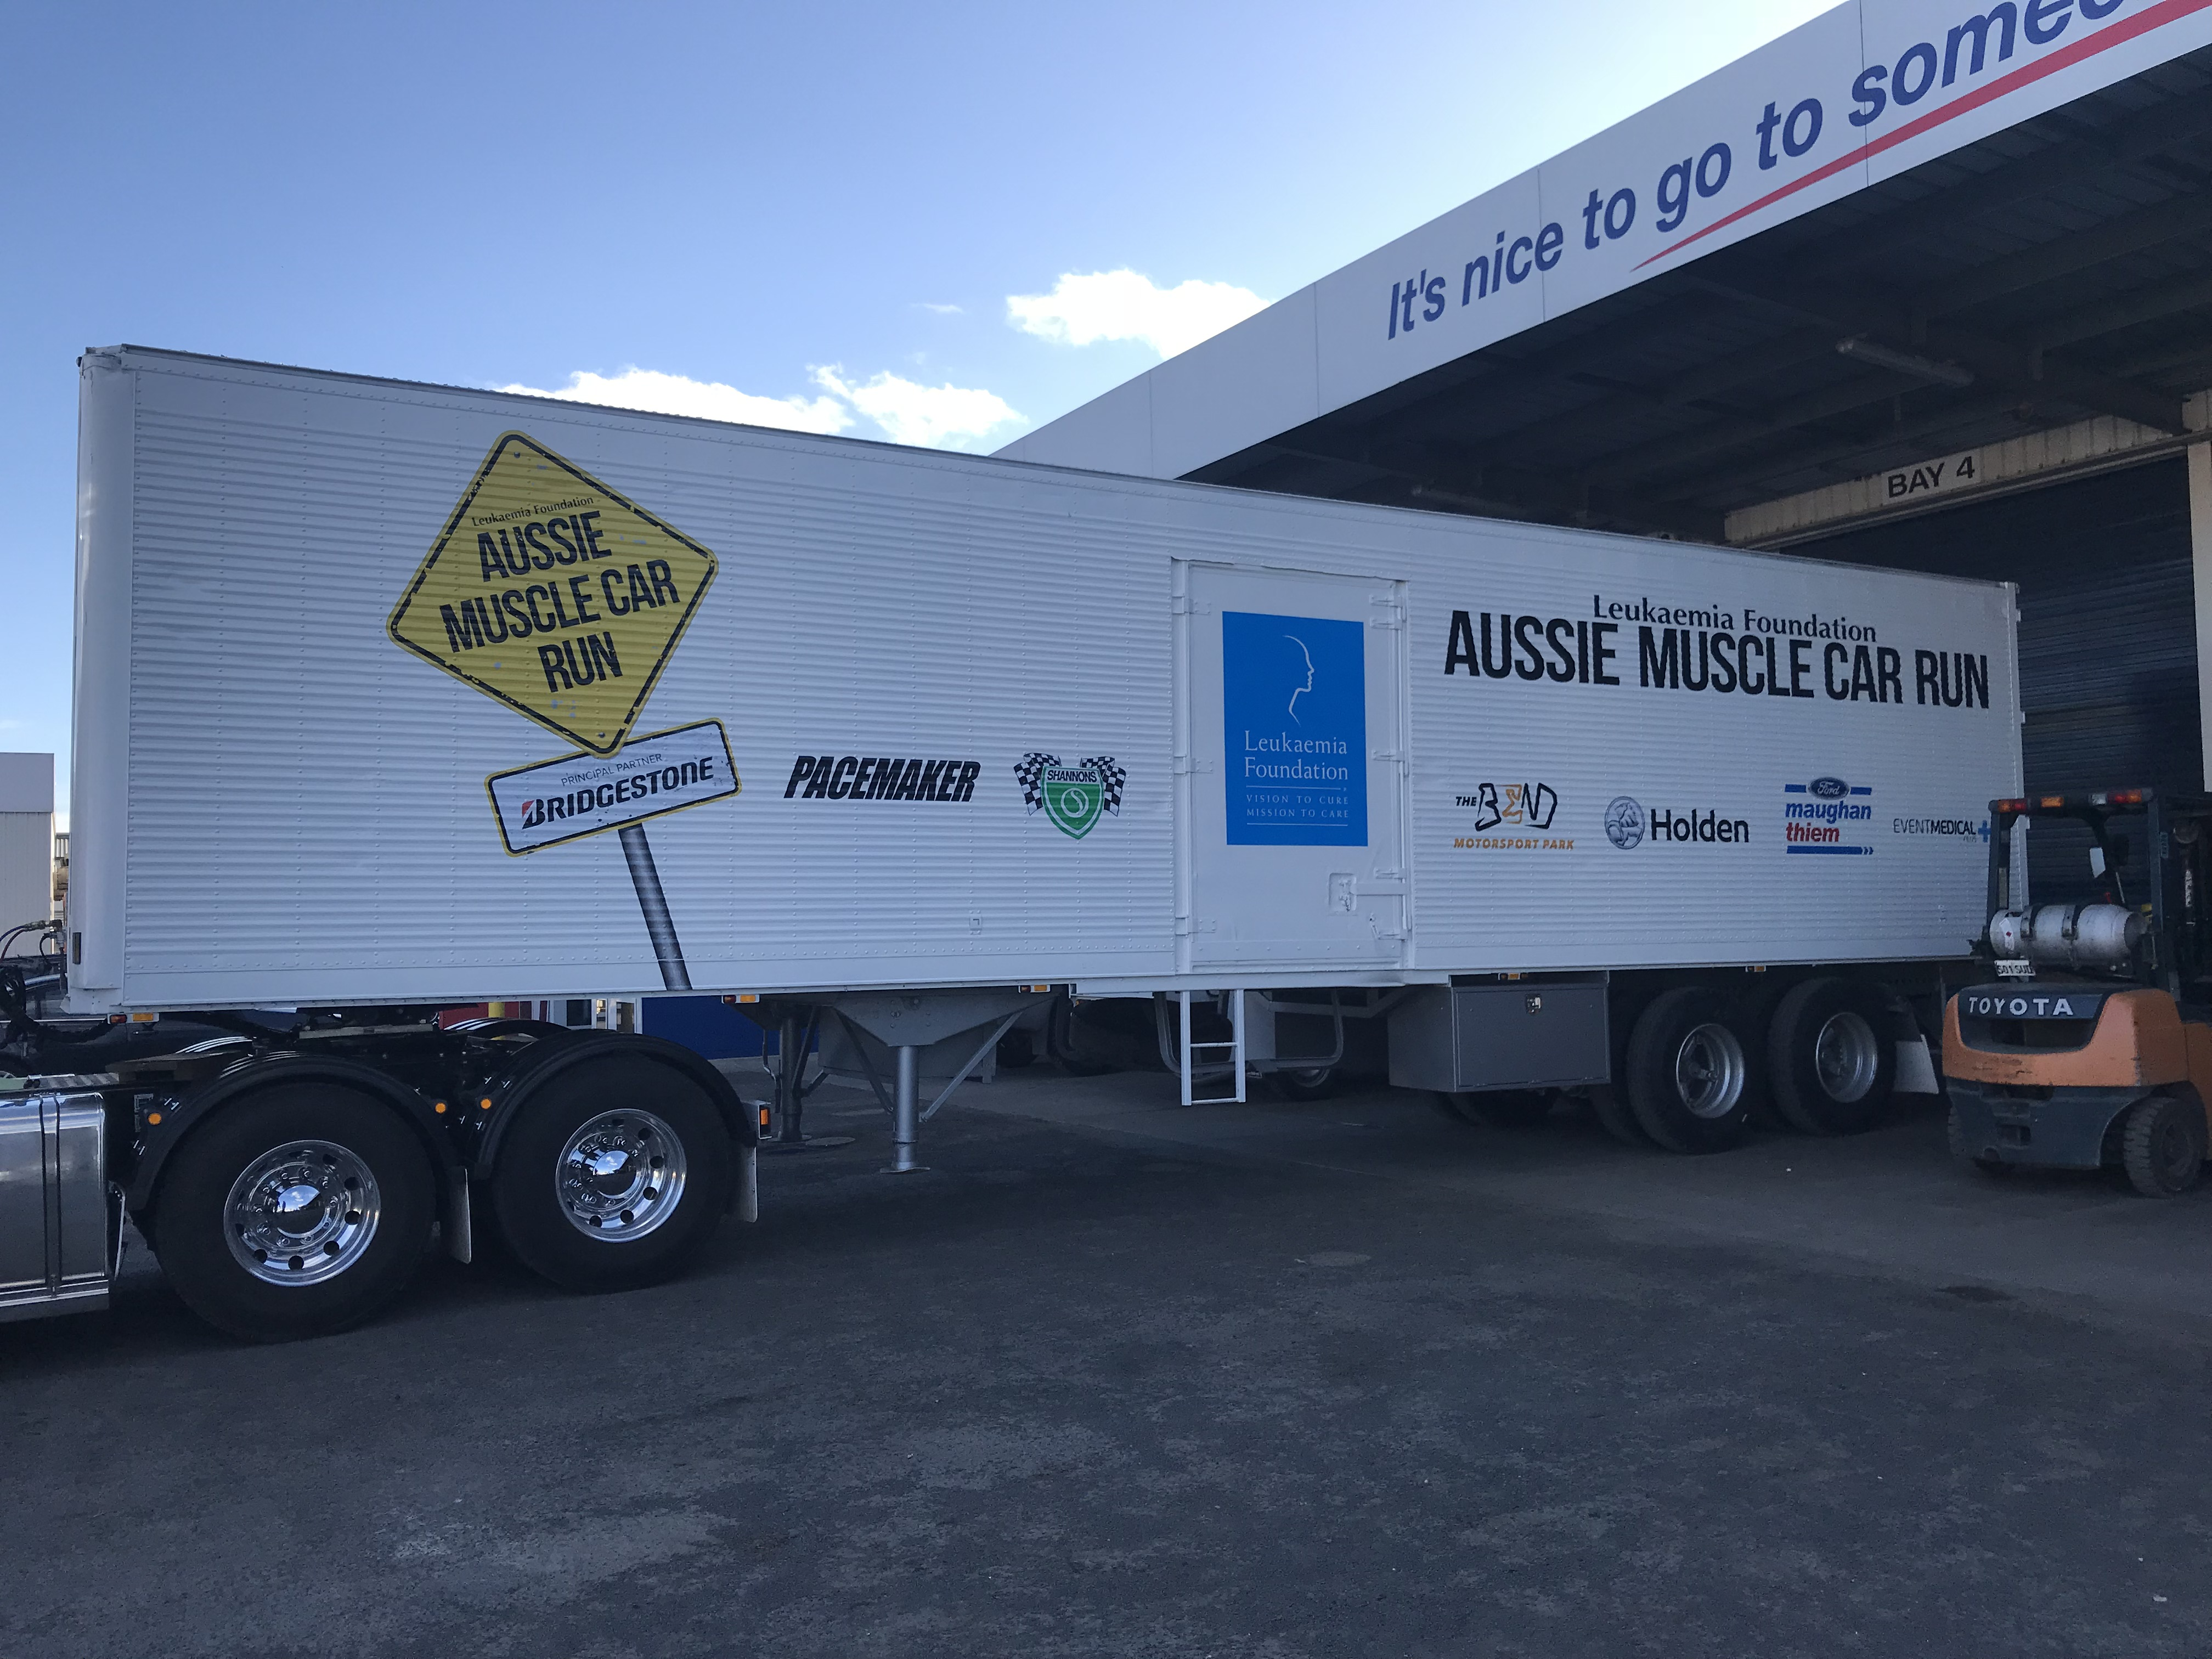 Aussie Muscle Car Trailer Signage